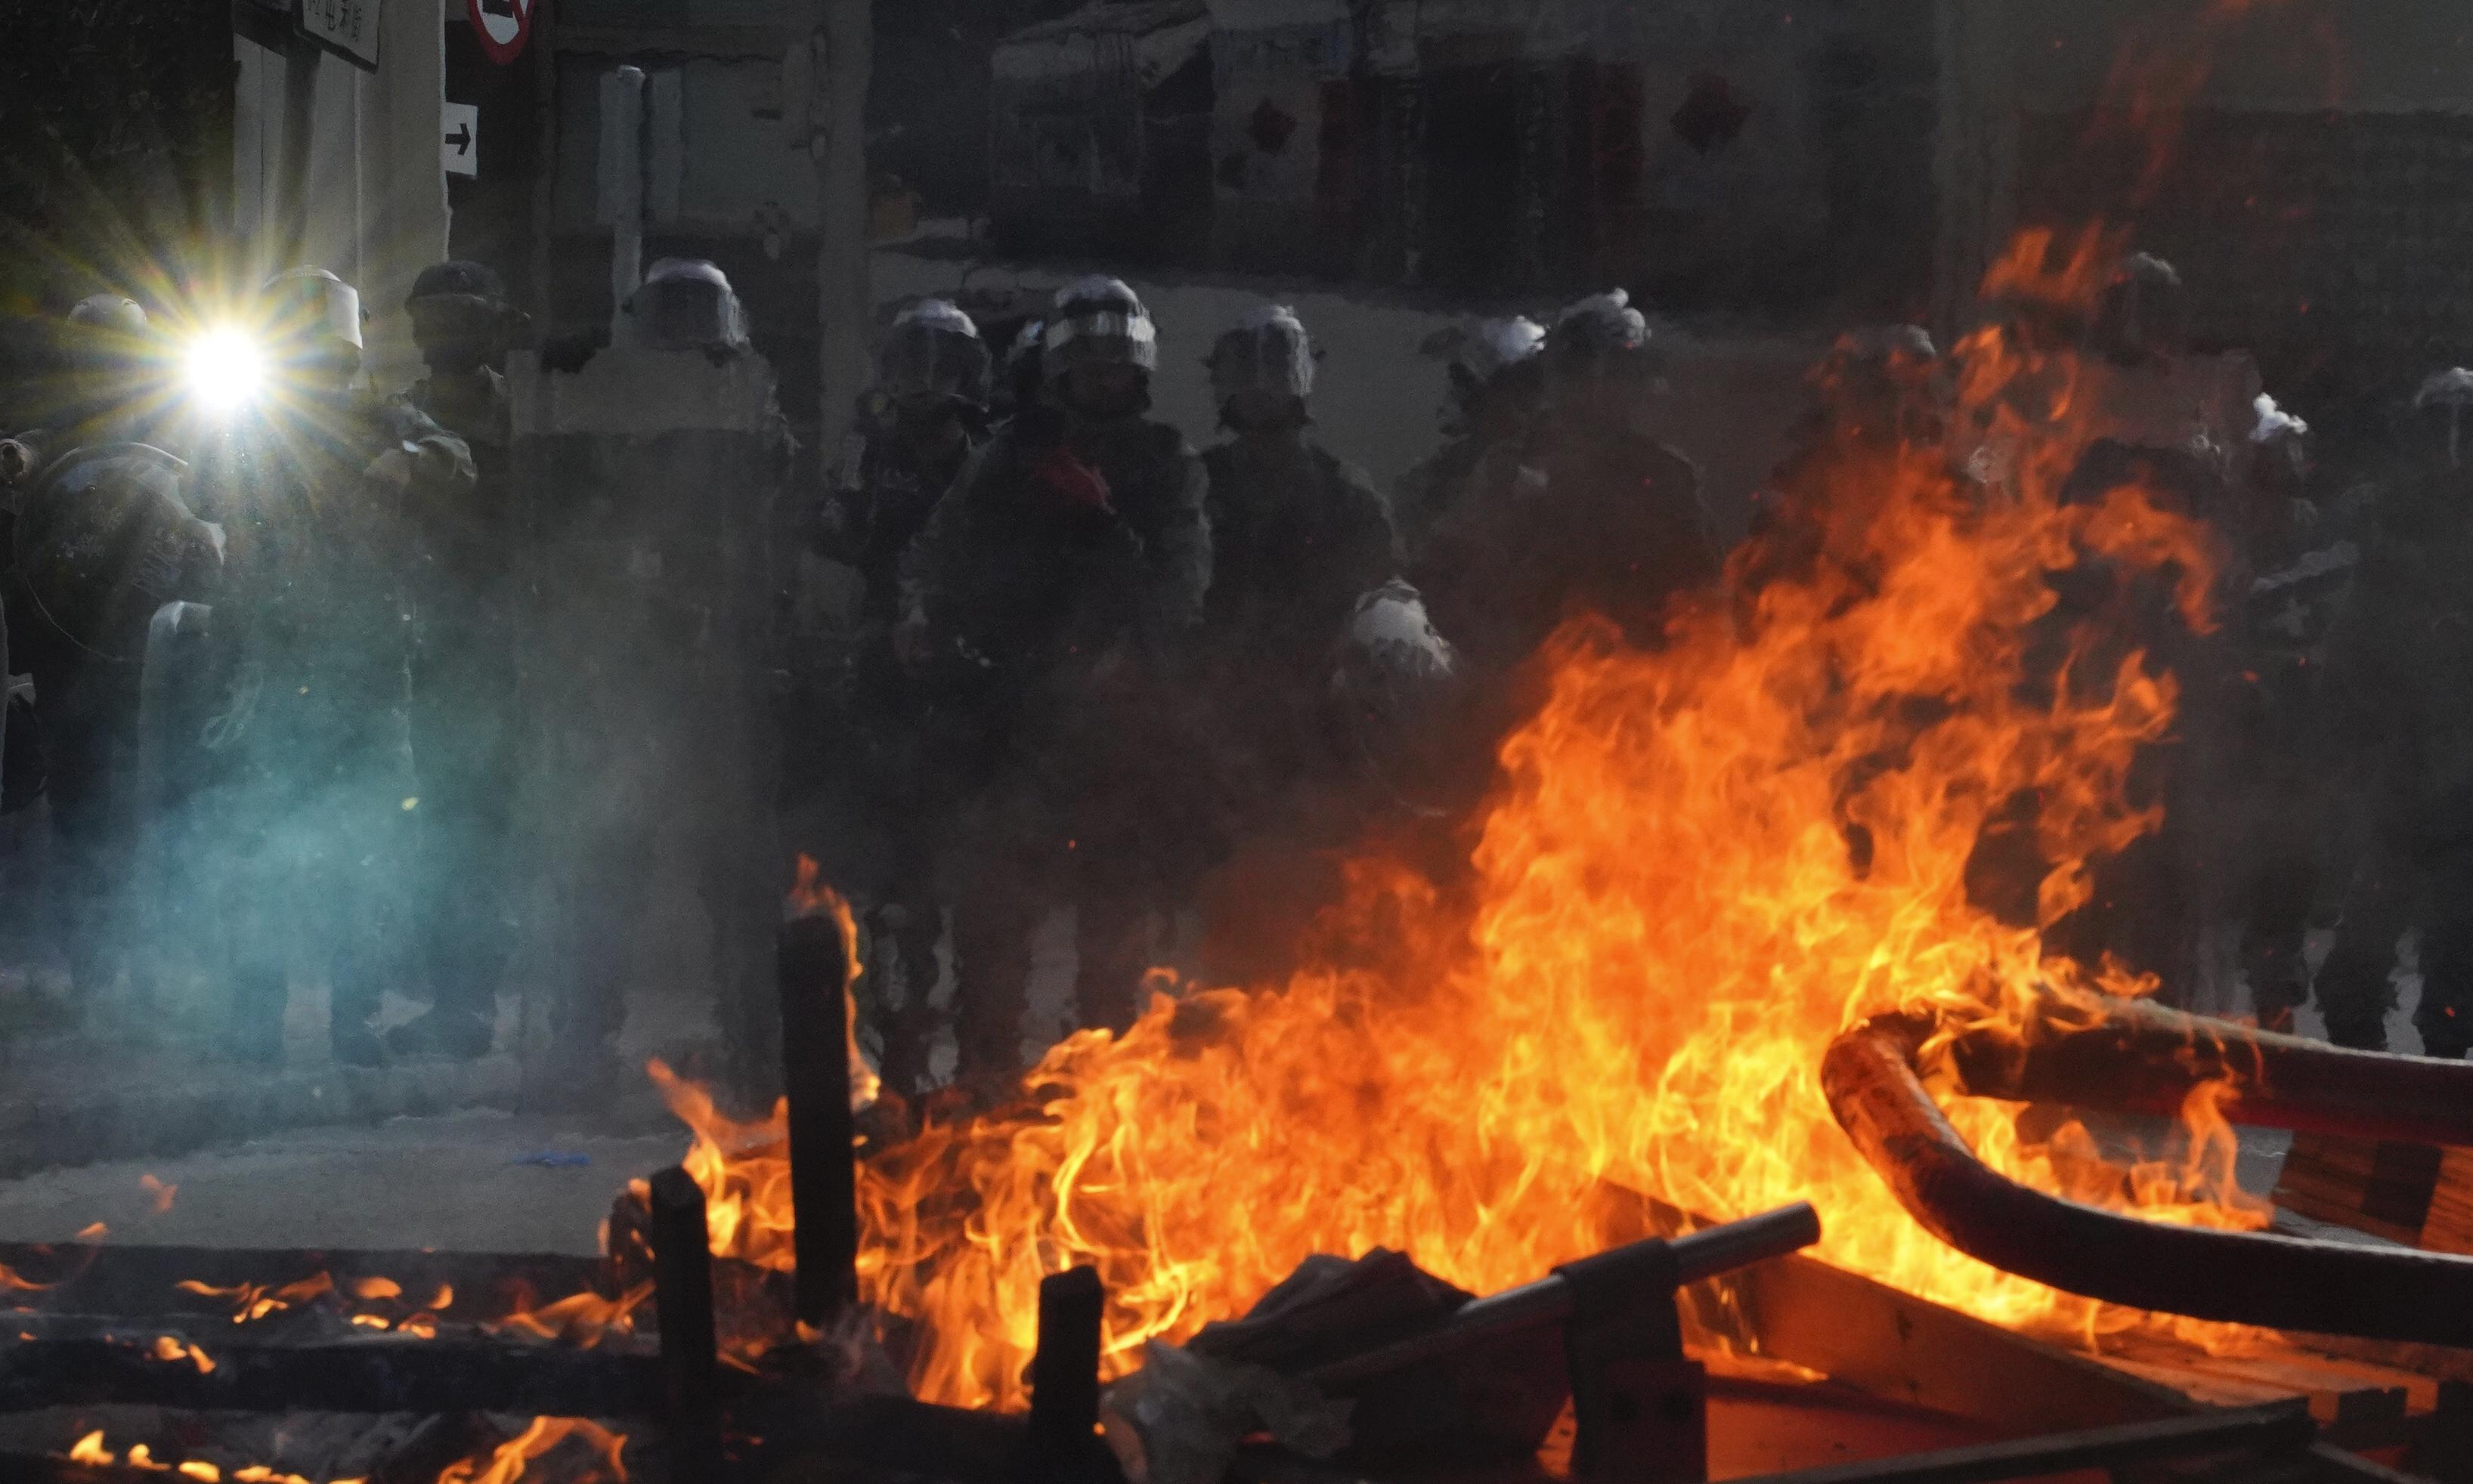 Hong Kong riot police fire teargas at protesters as unrest continues